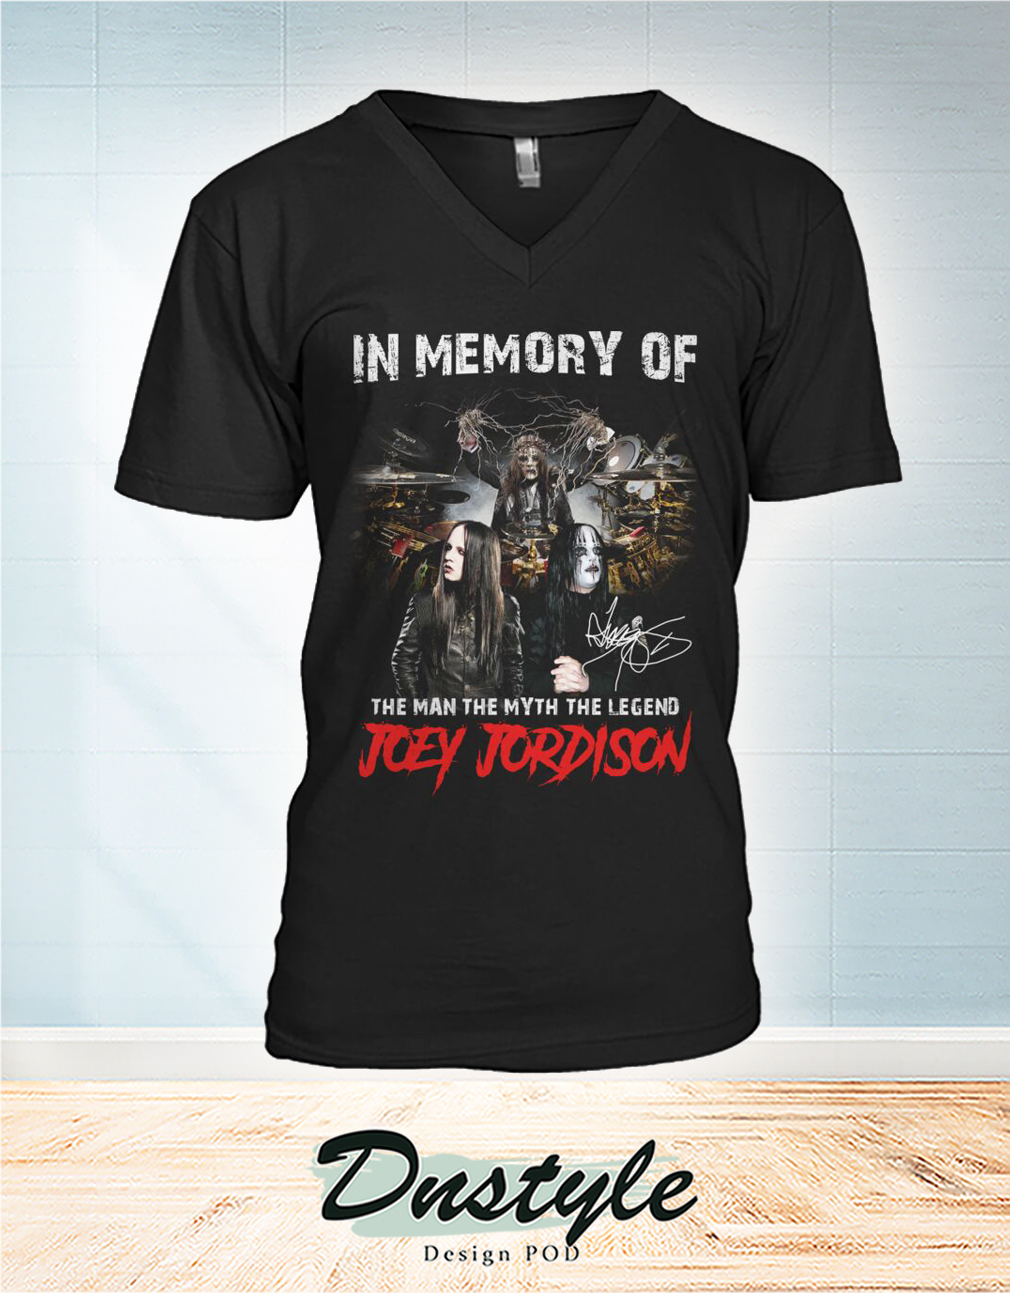 In memory of the man the myth the legend Joey Jordison v-neck